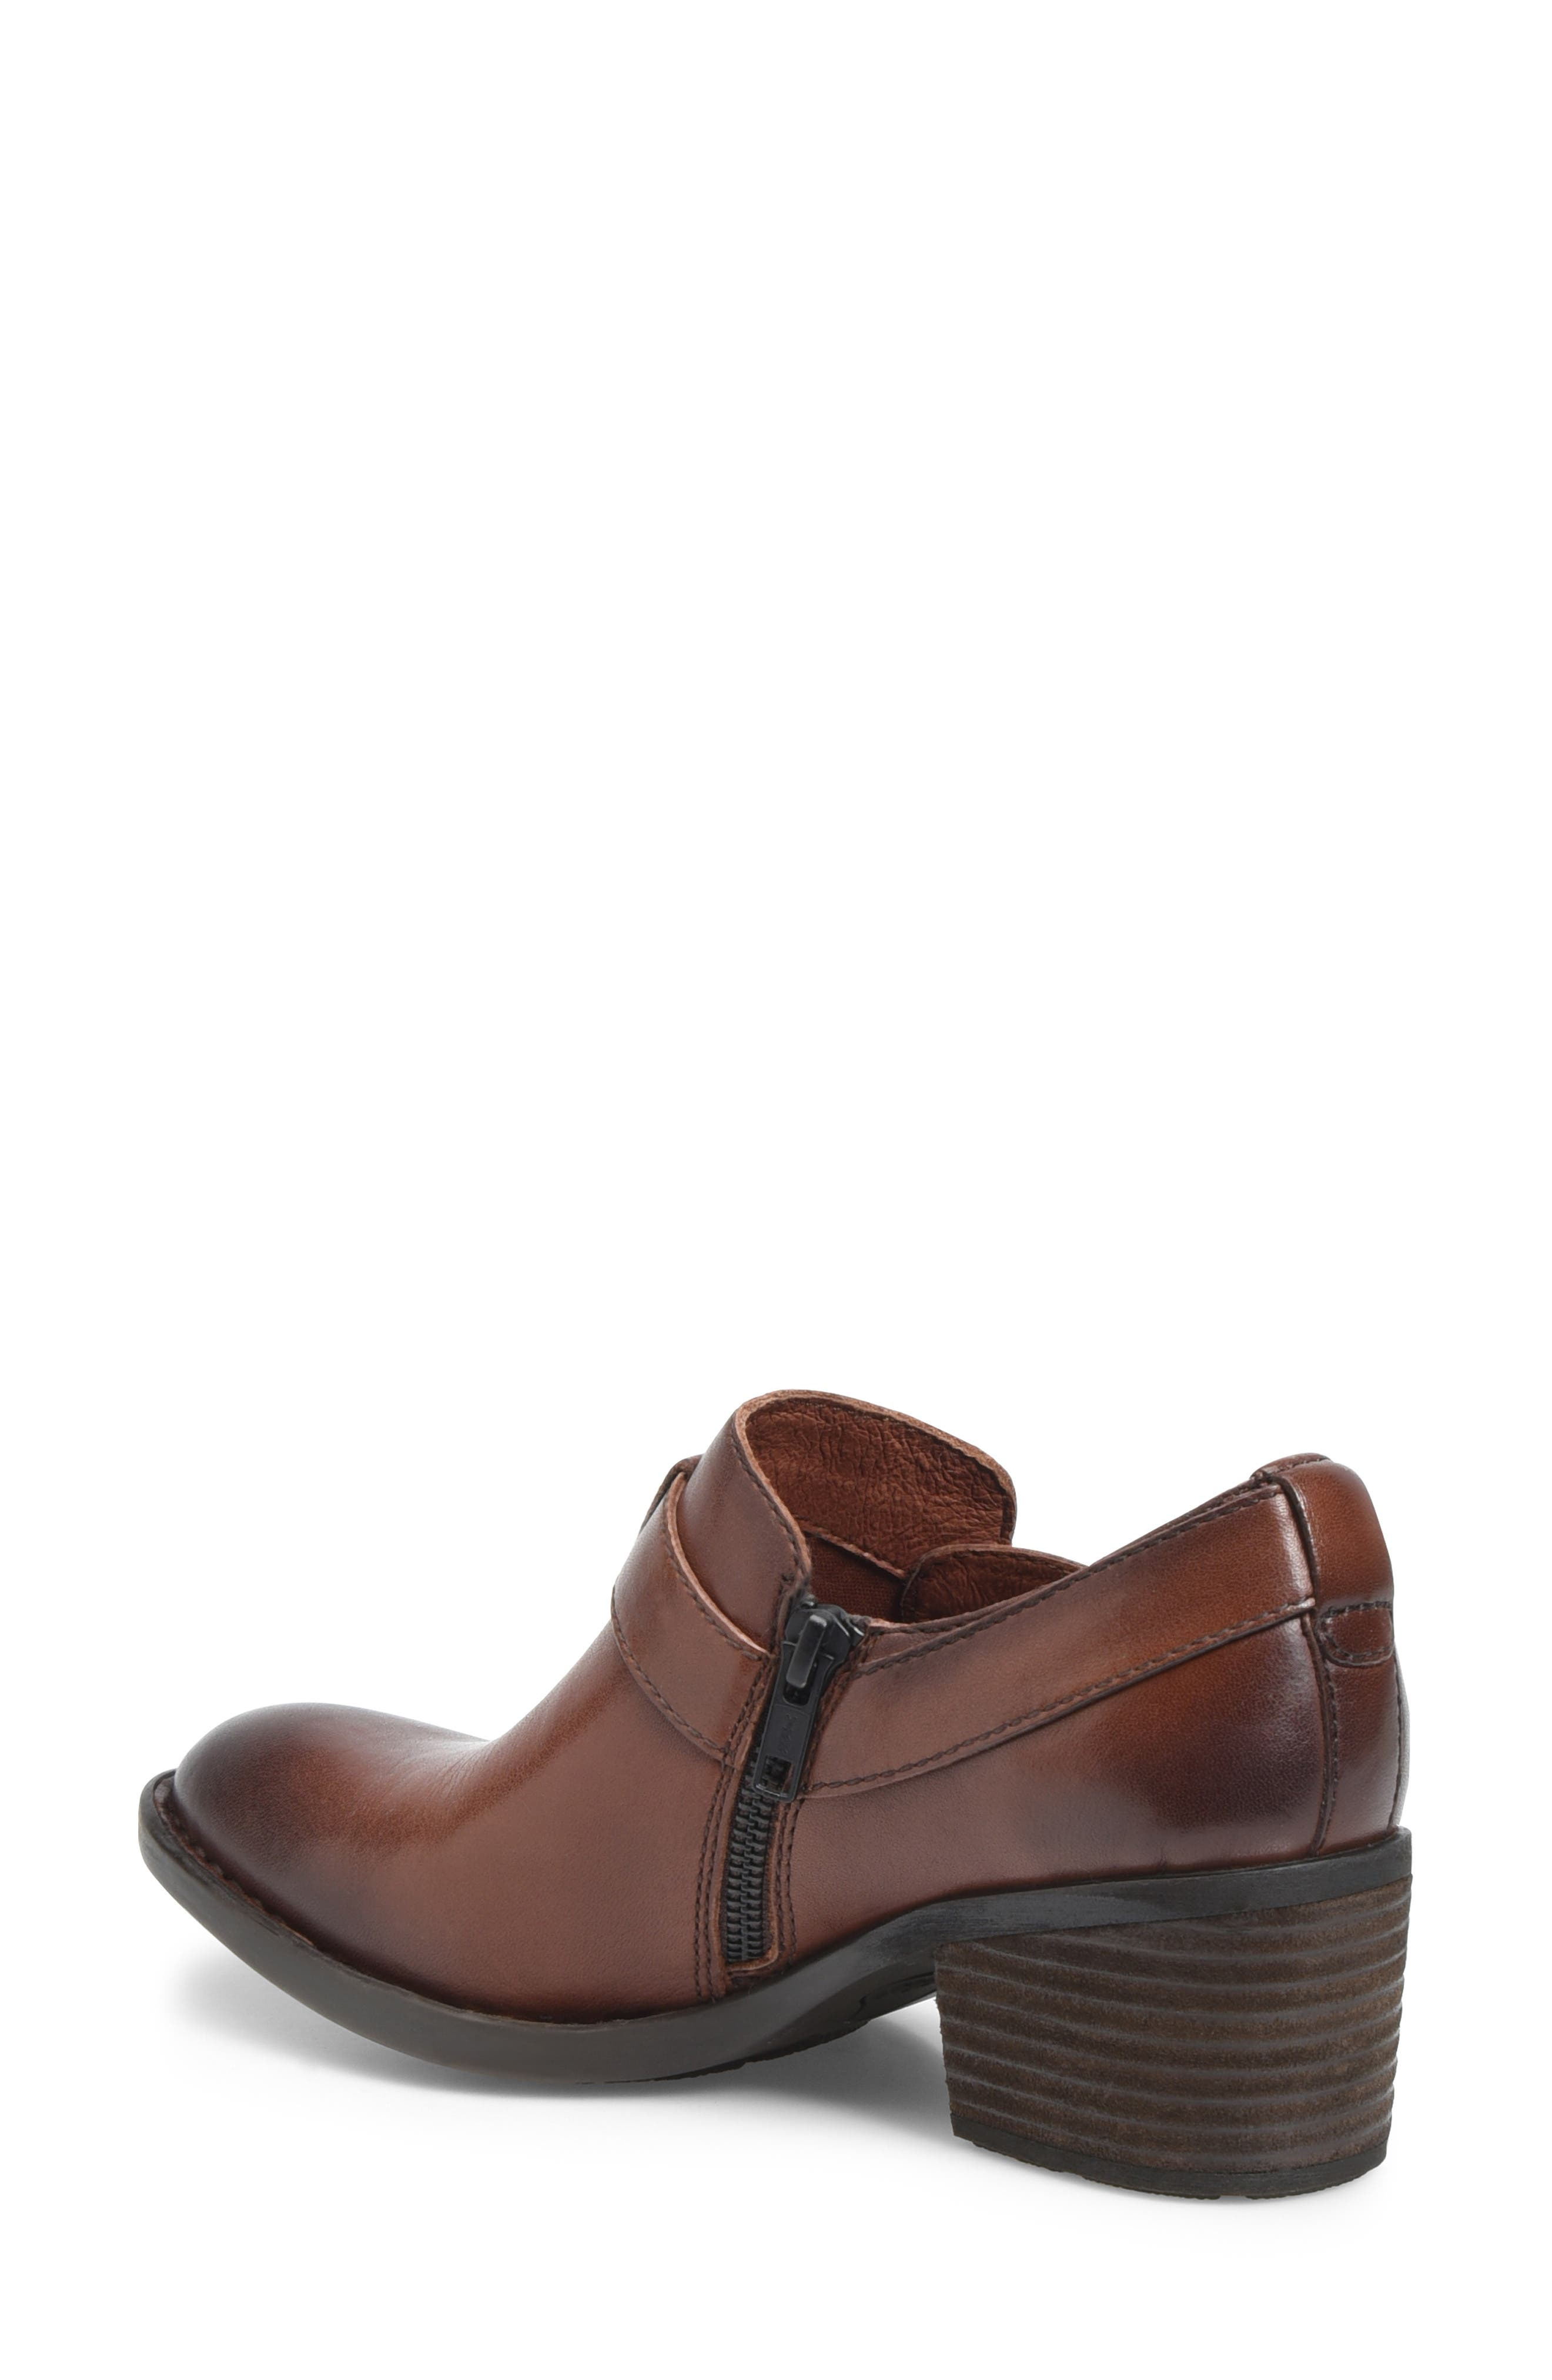 Timmons Bootie,                             Alternate thumbnail 2, color,                             BROWN LEATHER